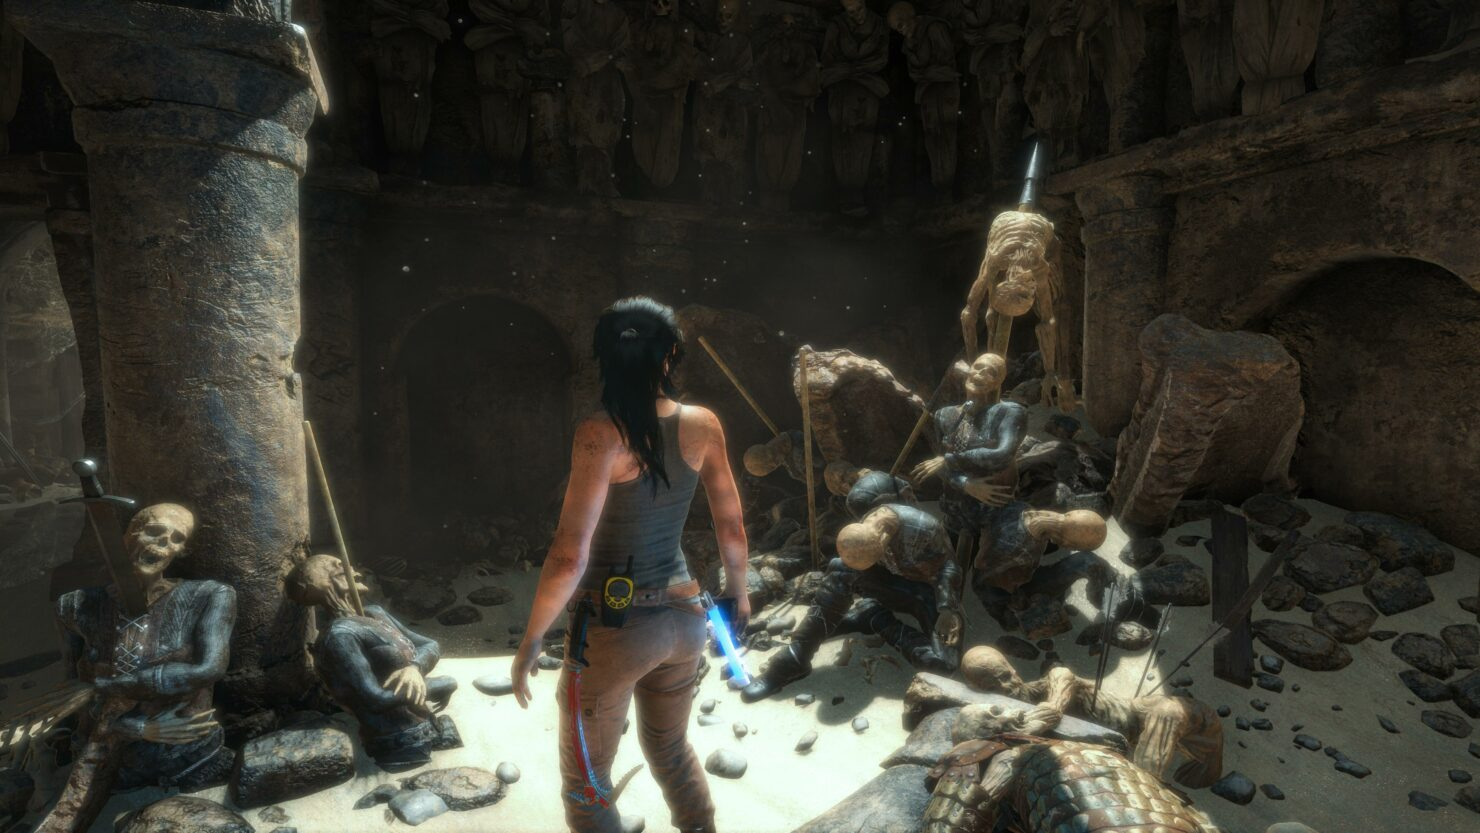 rise-of-the-tomb-raider_pc_4k_pcmr_48